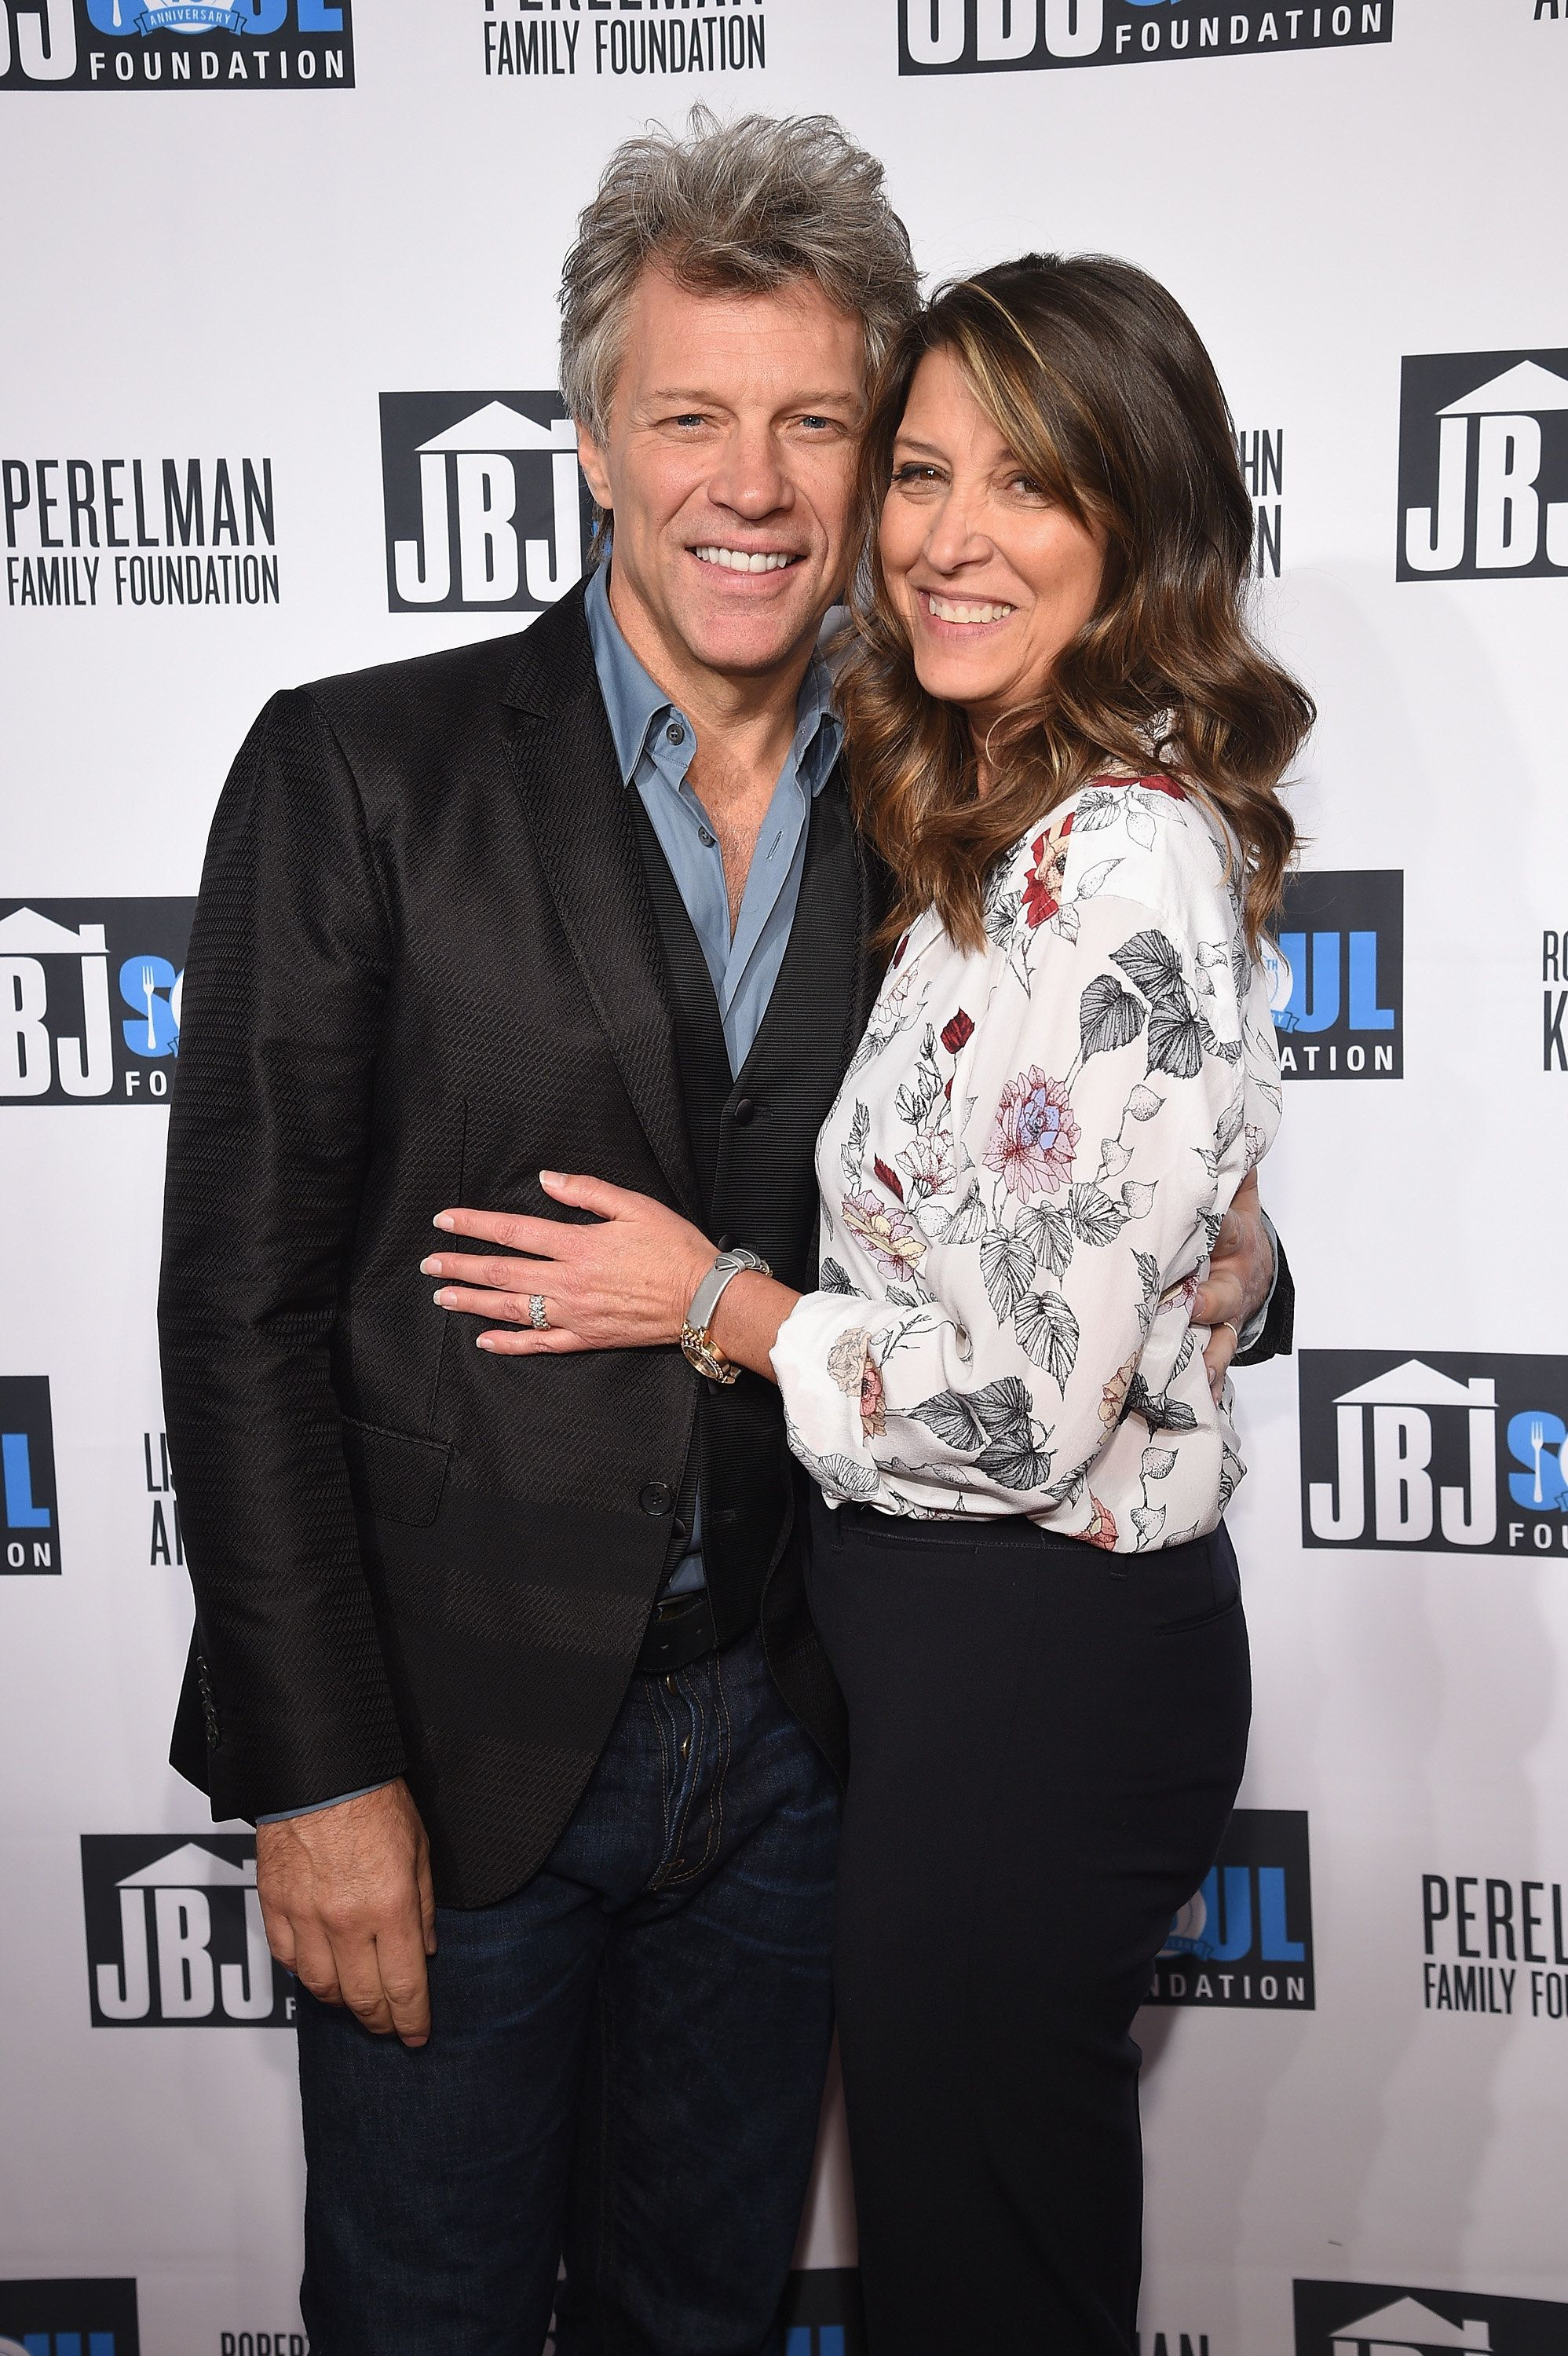 NEW YORK, NY - OCTOBER 06:  Jon Bon Jovi (L) and Dorothea Hurley attend the Jon Bon Jovi Soul Foundation's 10 year anniversary at the Garage on October 6, 2016 in New York City.  (Photo by Dimitrios Kambouris/Getty Images)